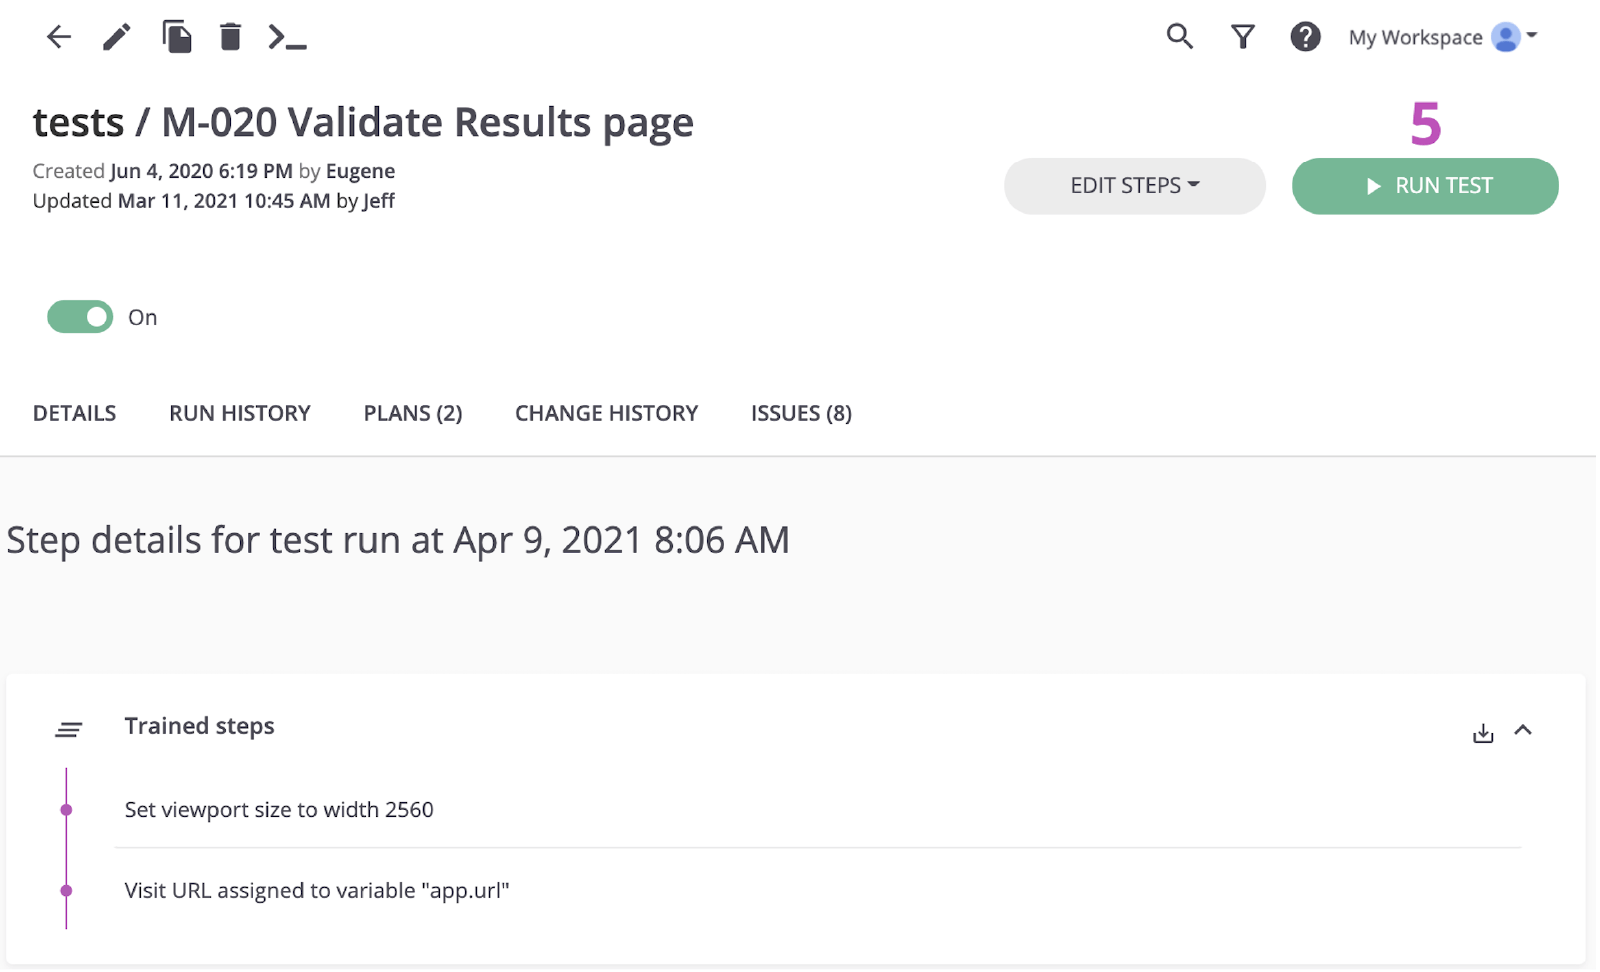 Tests / M-020 Validate Results page